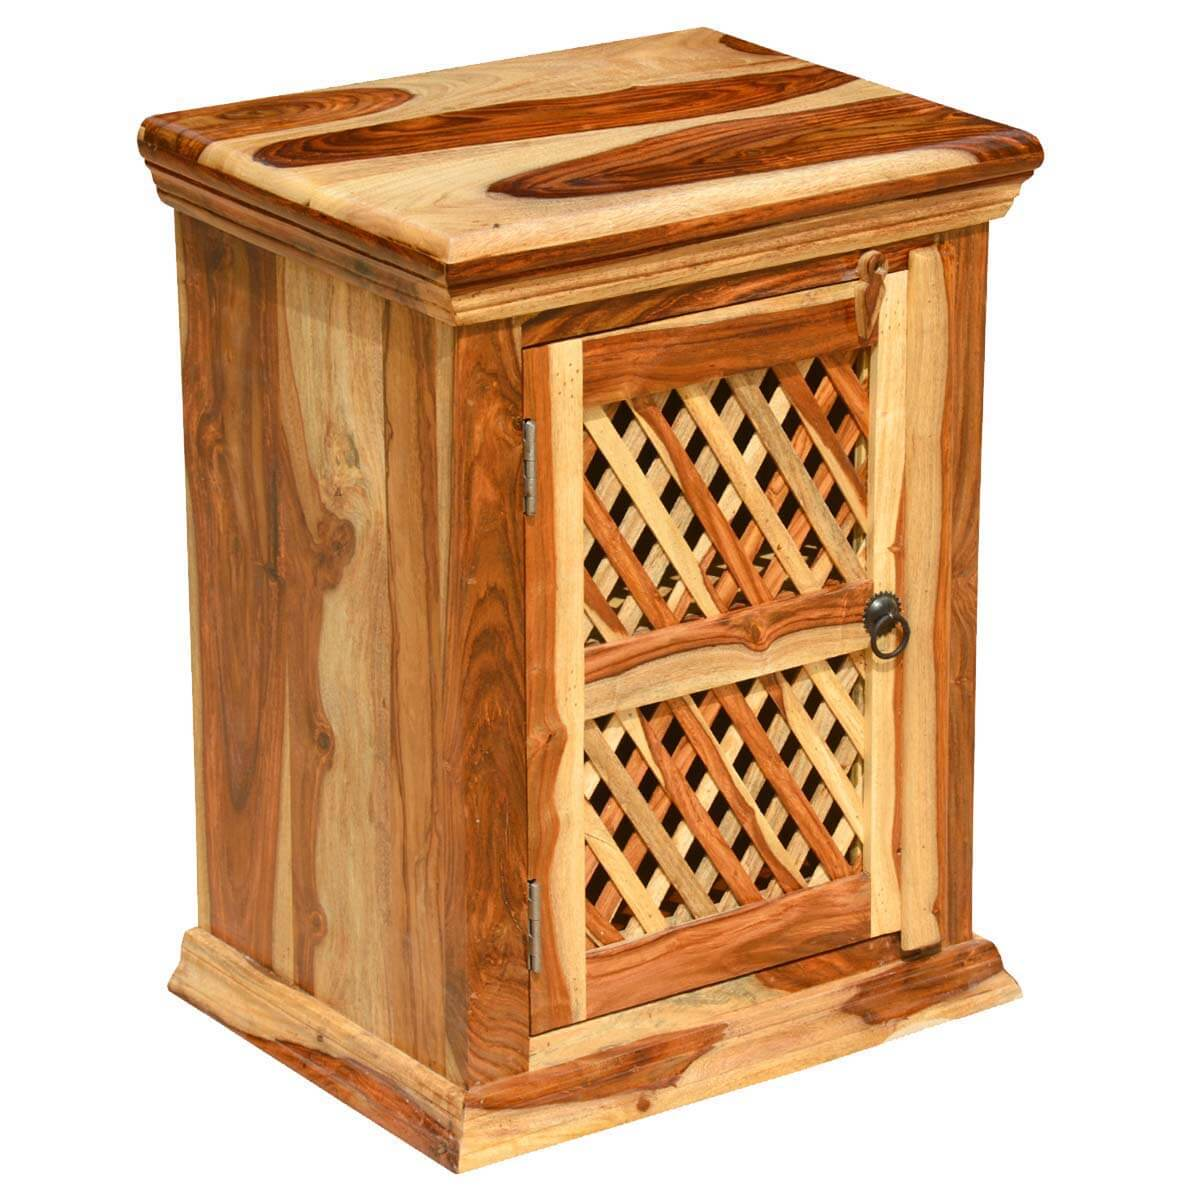 Wooden Kitchen Stands ~ Wood night stand bed side table kitchen storage cabinet